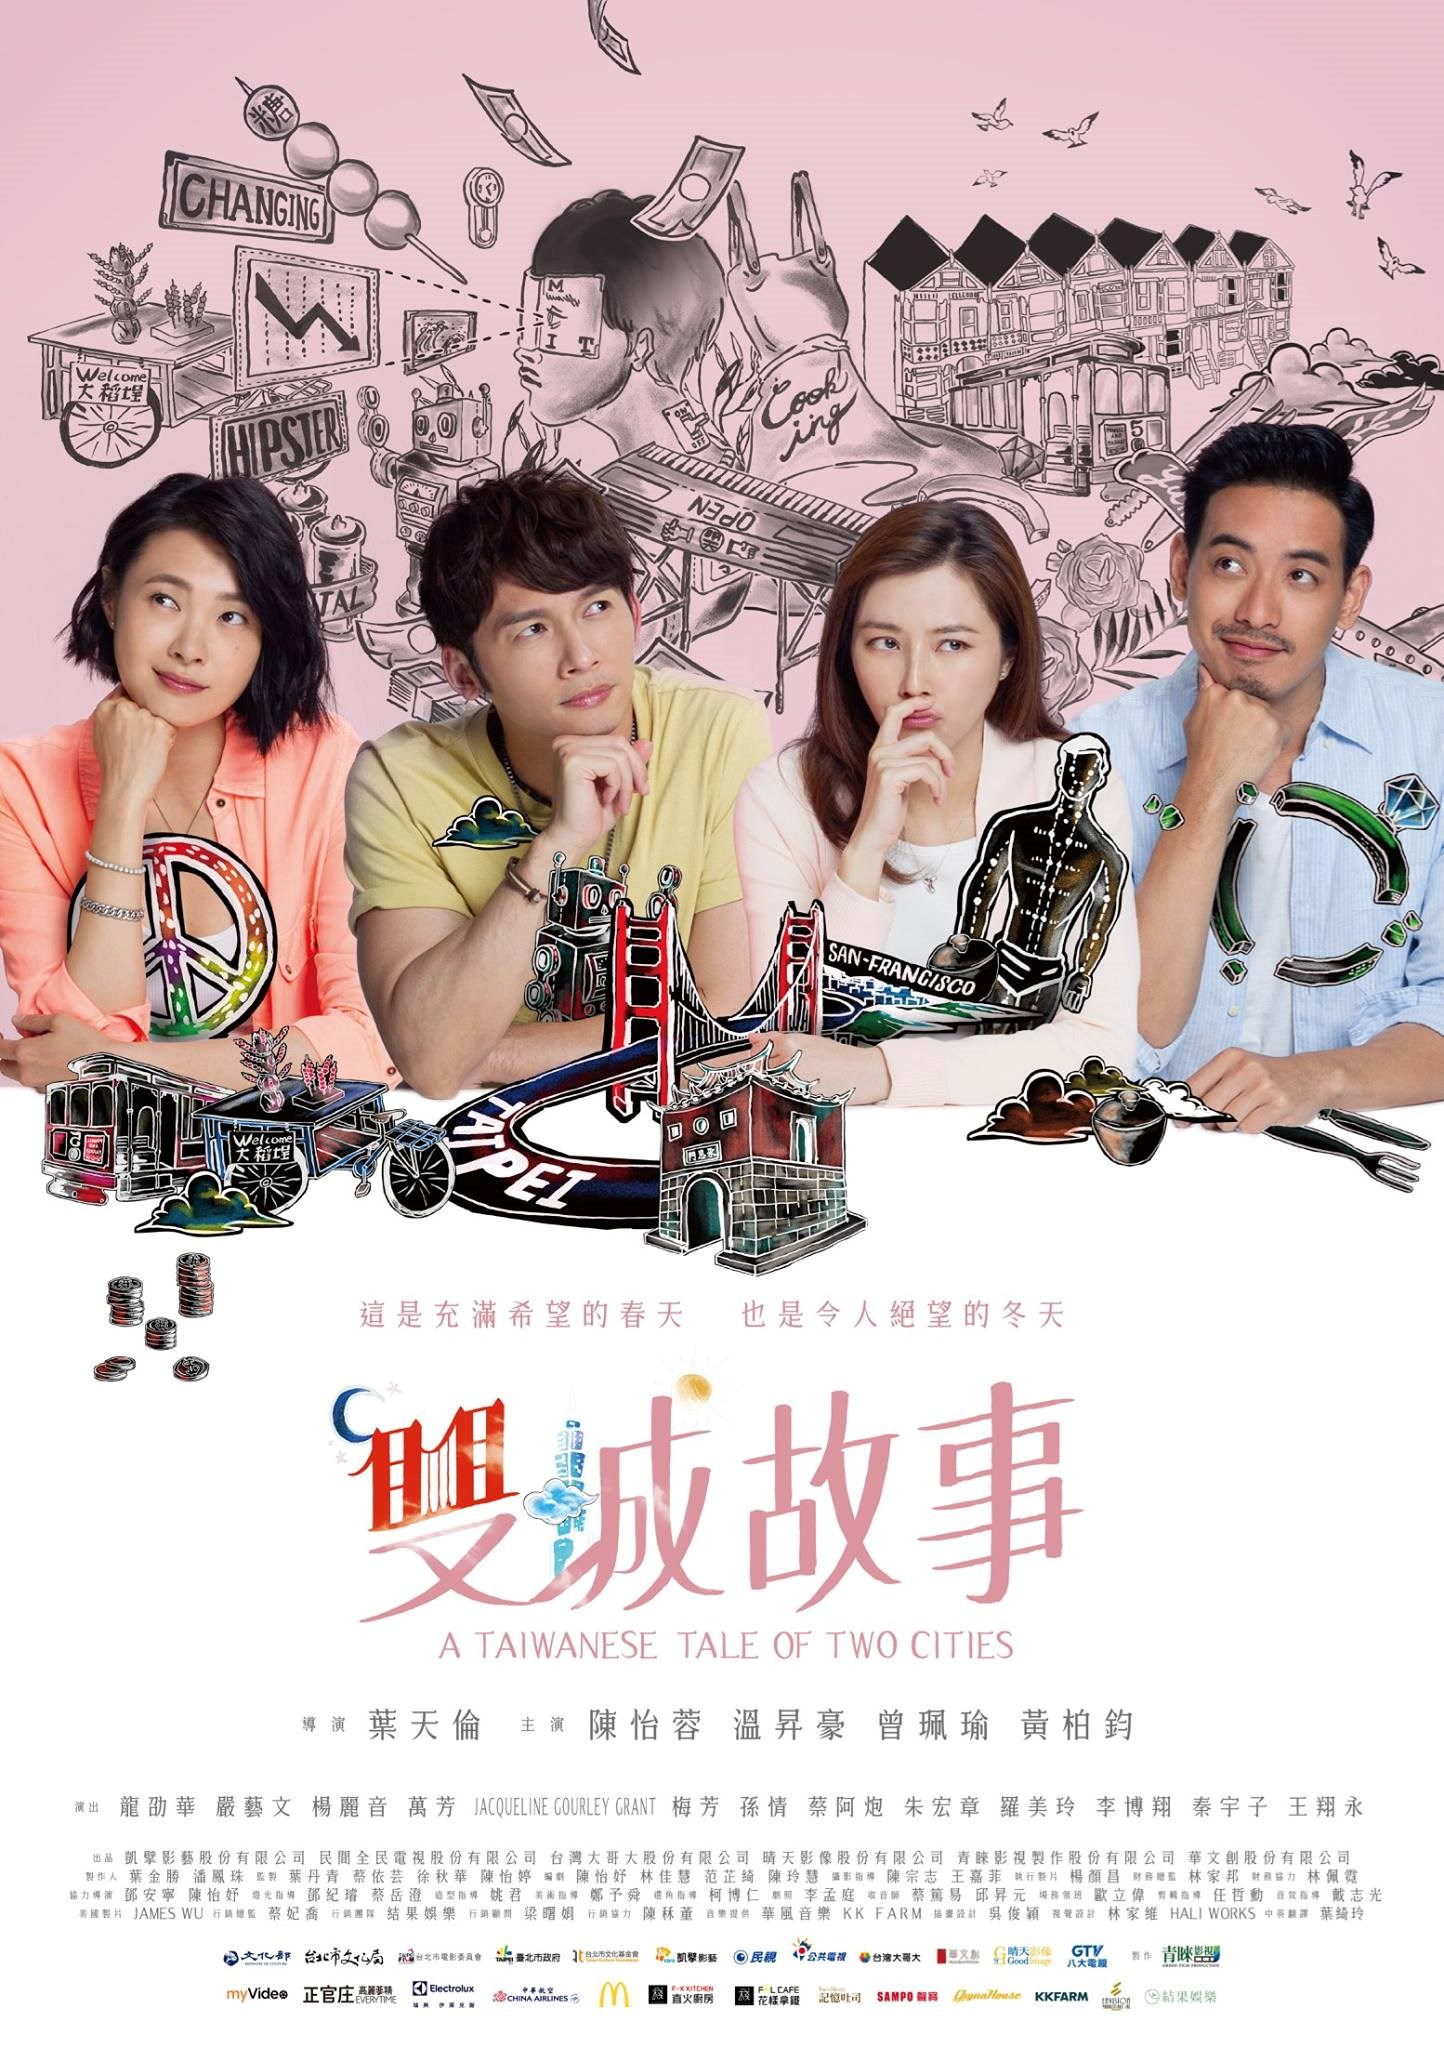 Is A Taiwanese Tale of Two Cities: Season 1 on Hulu? • A ...